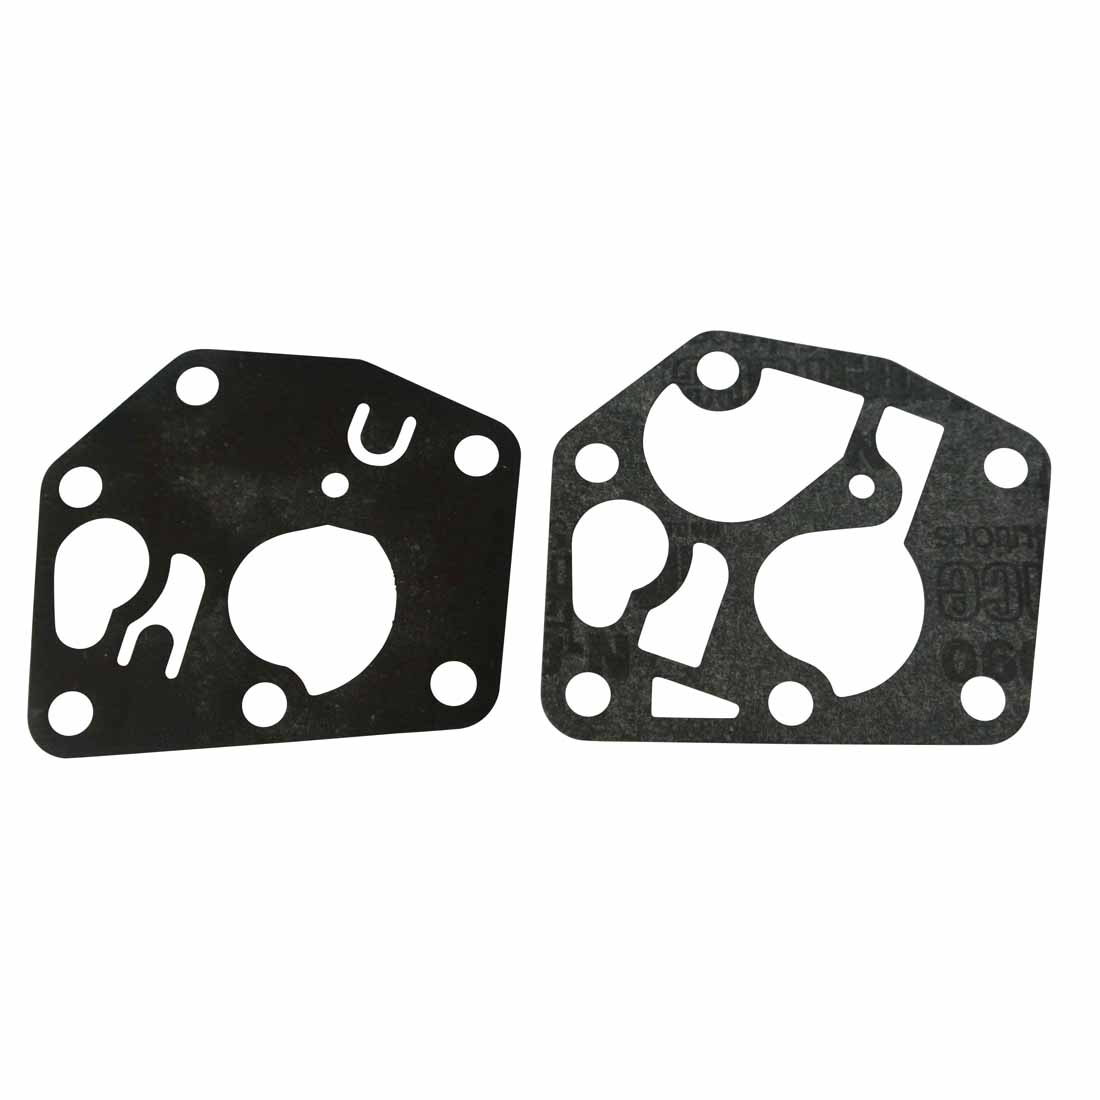 Carburetor Gasket Repair kit For <font><b>BRIGGS</b></font>&STRATTON 495770 <font><b>795083</b></font> Murray 3.5HP image